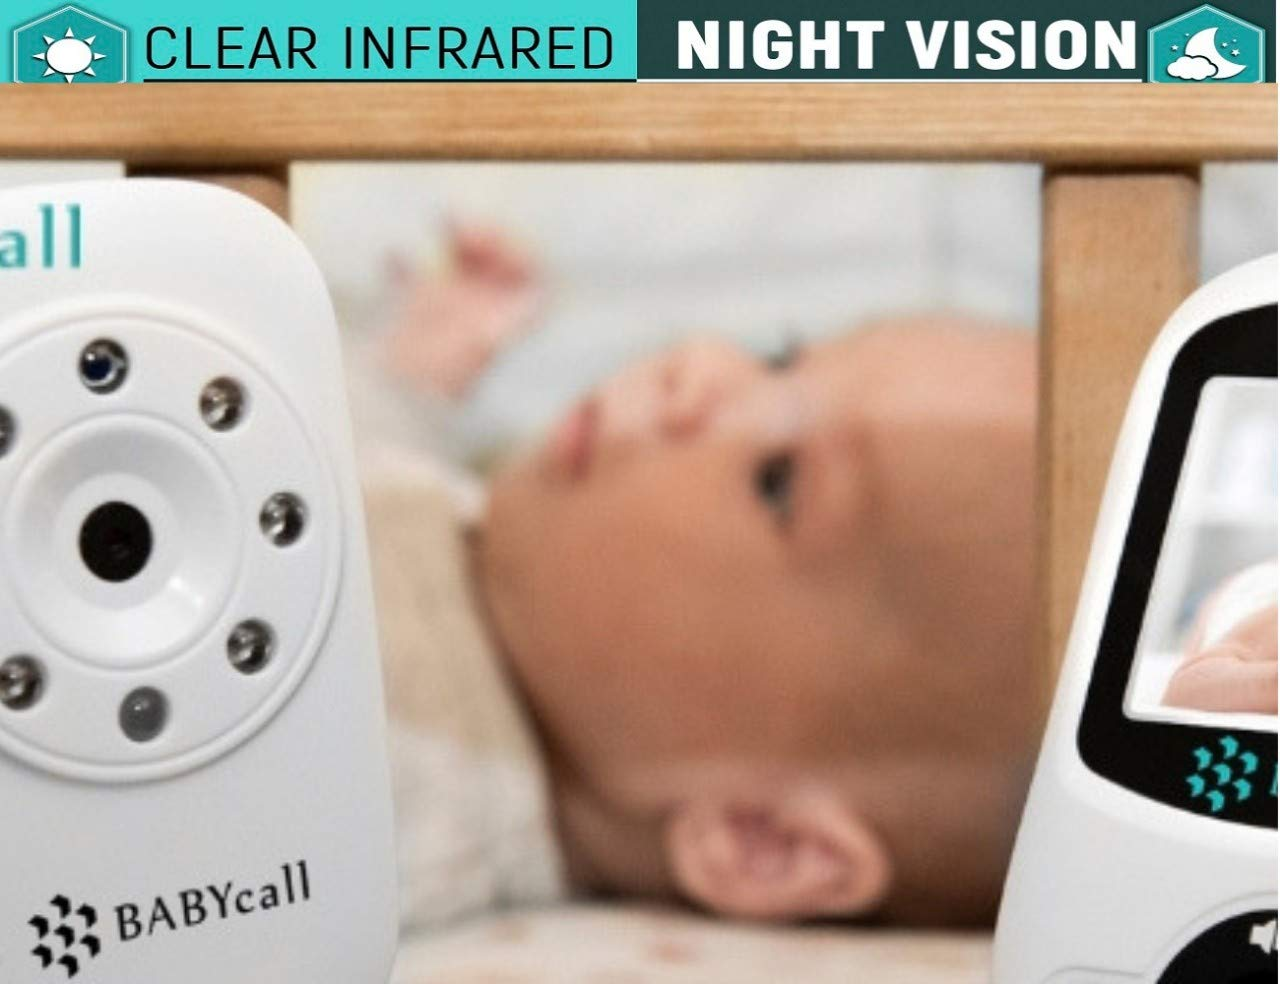 Video Baby Monitor with Camera - Upgrade 2019 Model of Monitoring System with Night Vision, Two Way Audio, Temperature detectors - Long Range Wireless Monitoring by BABYcall by BABYcall (Image #7)